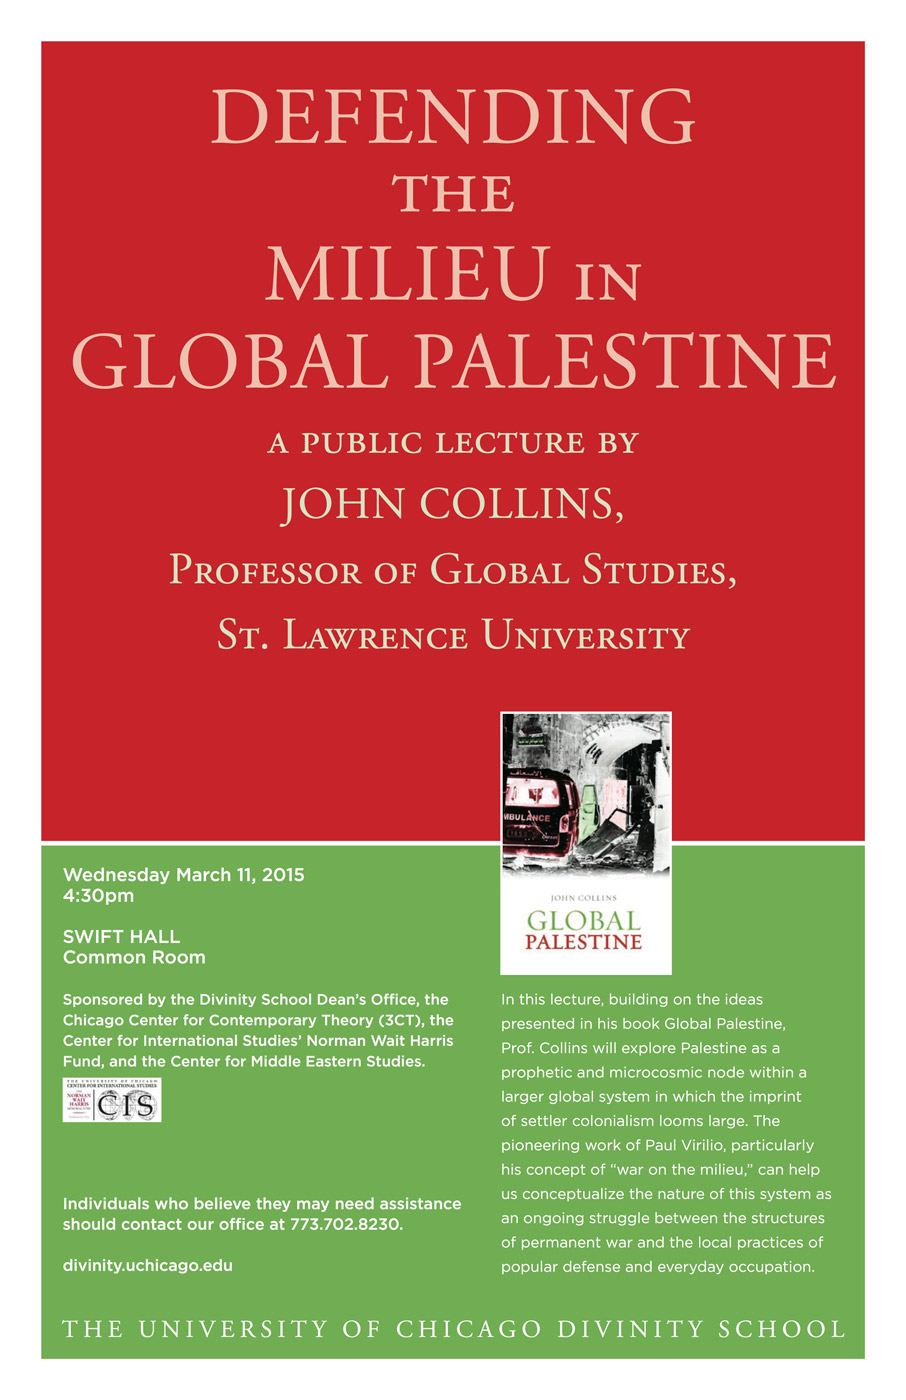 event poster for John Collins, Defending the Milieu in Global Palestine